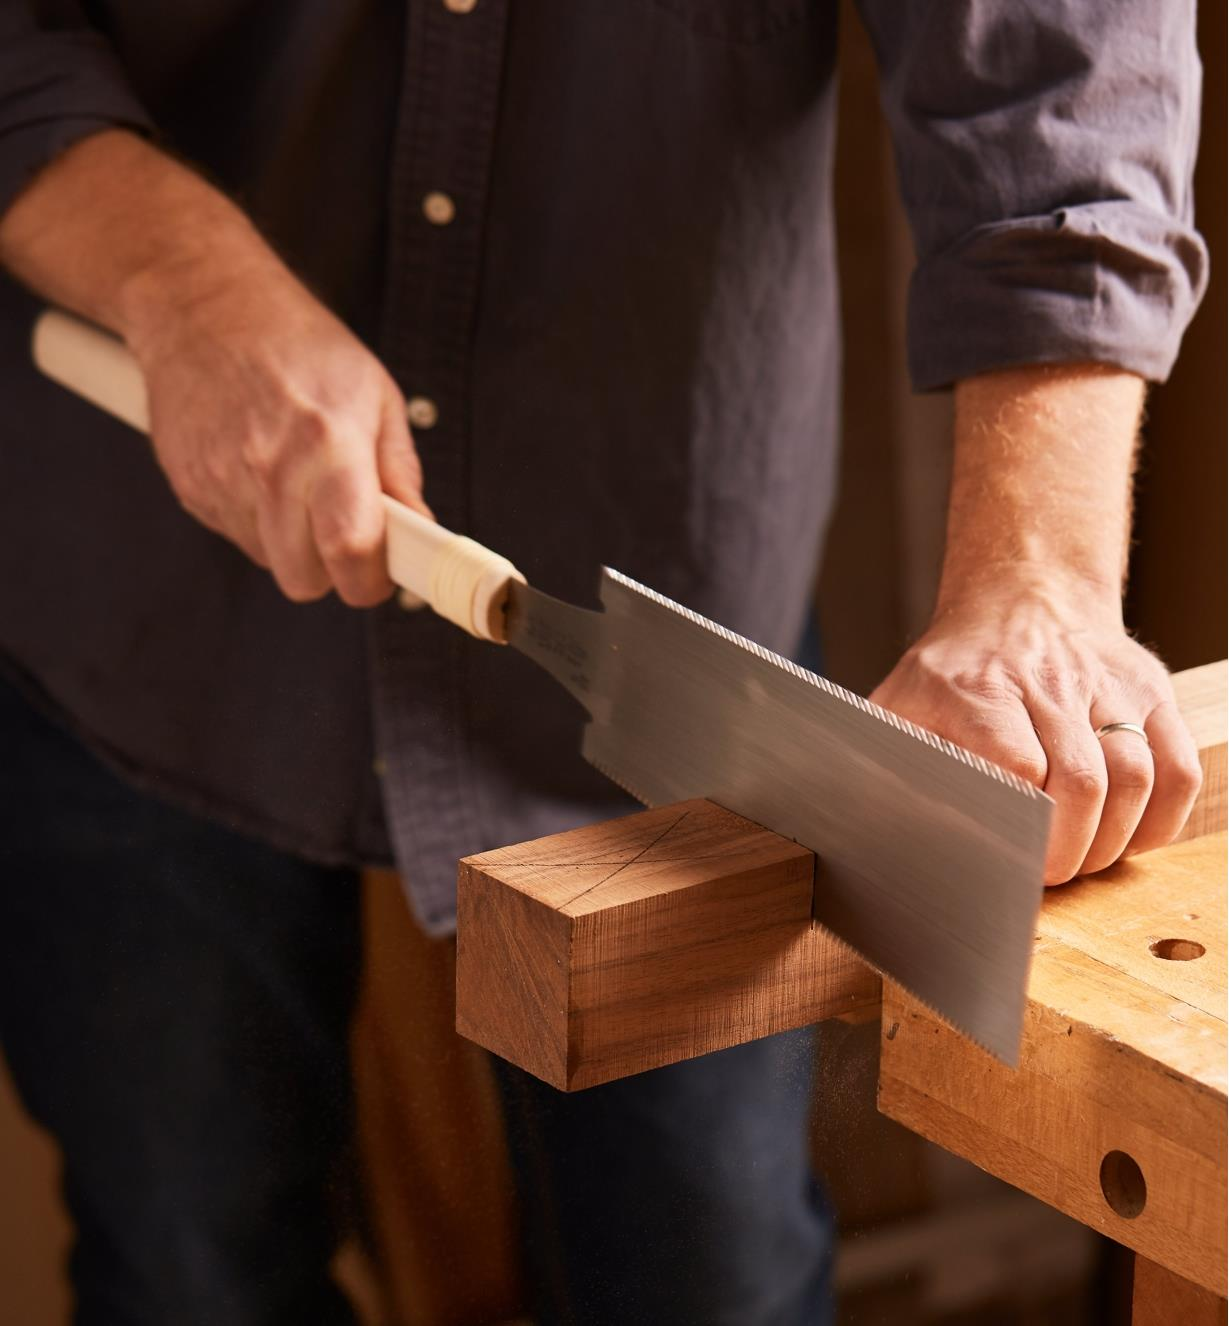 Sawing wood at the bench using a Japanese traditional ryoba saw